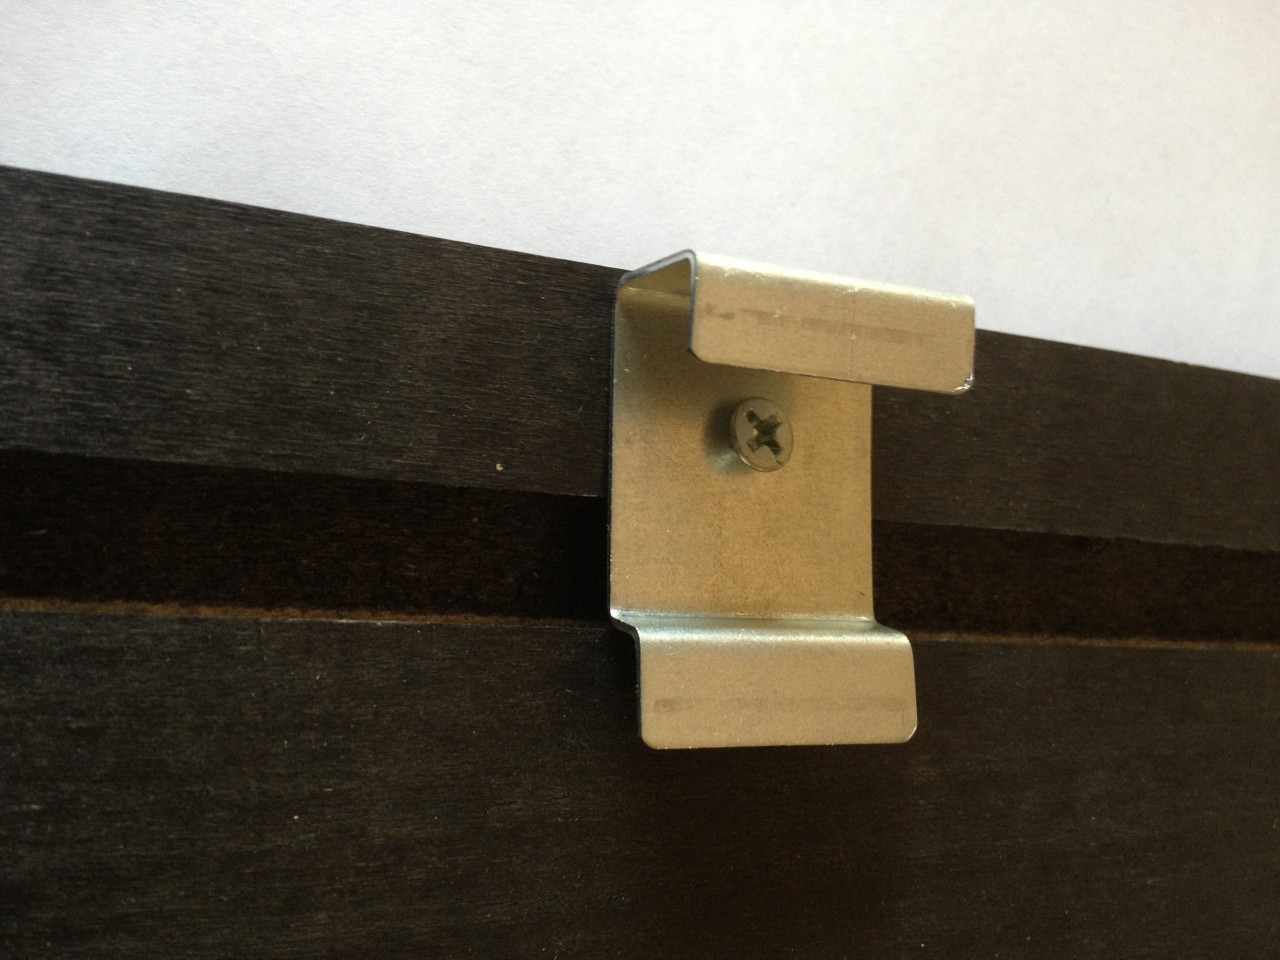 Universal replacement valance clips